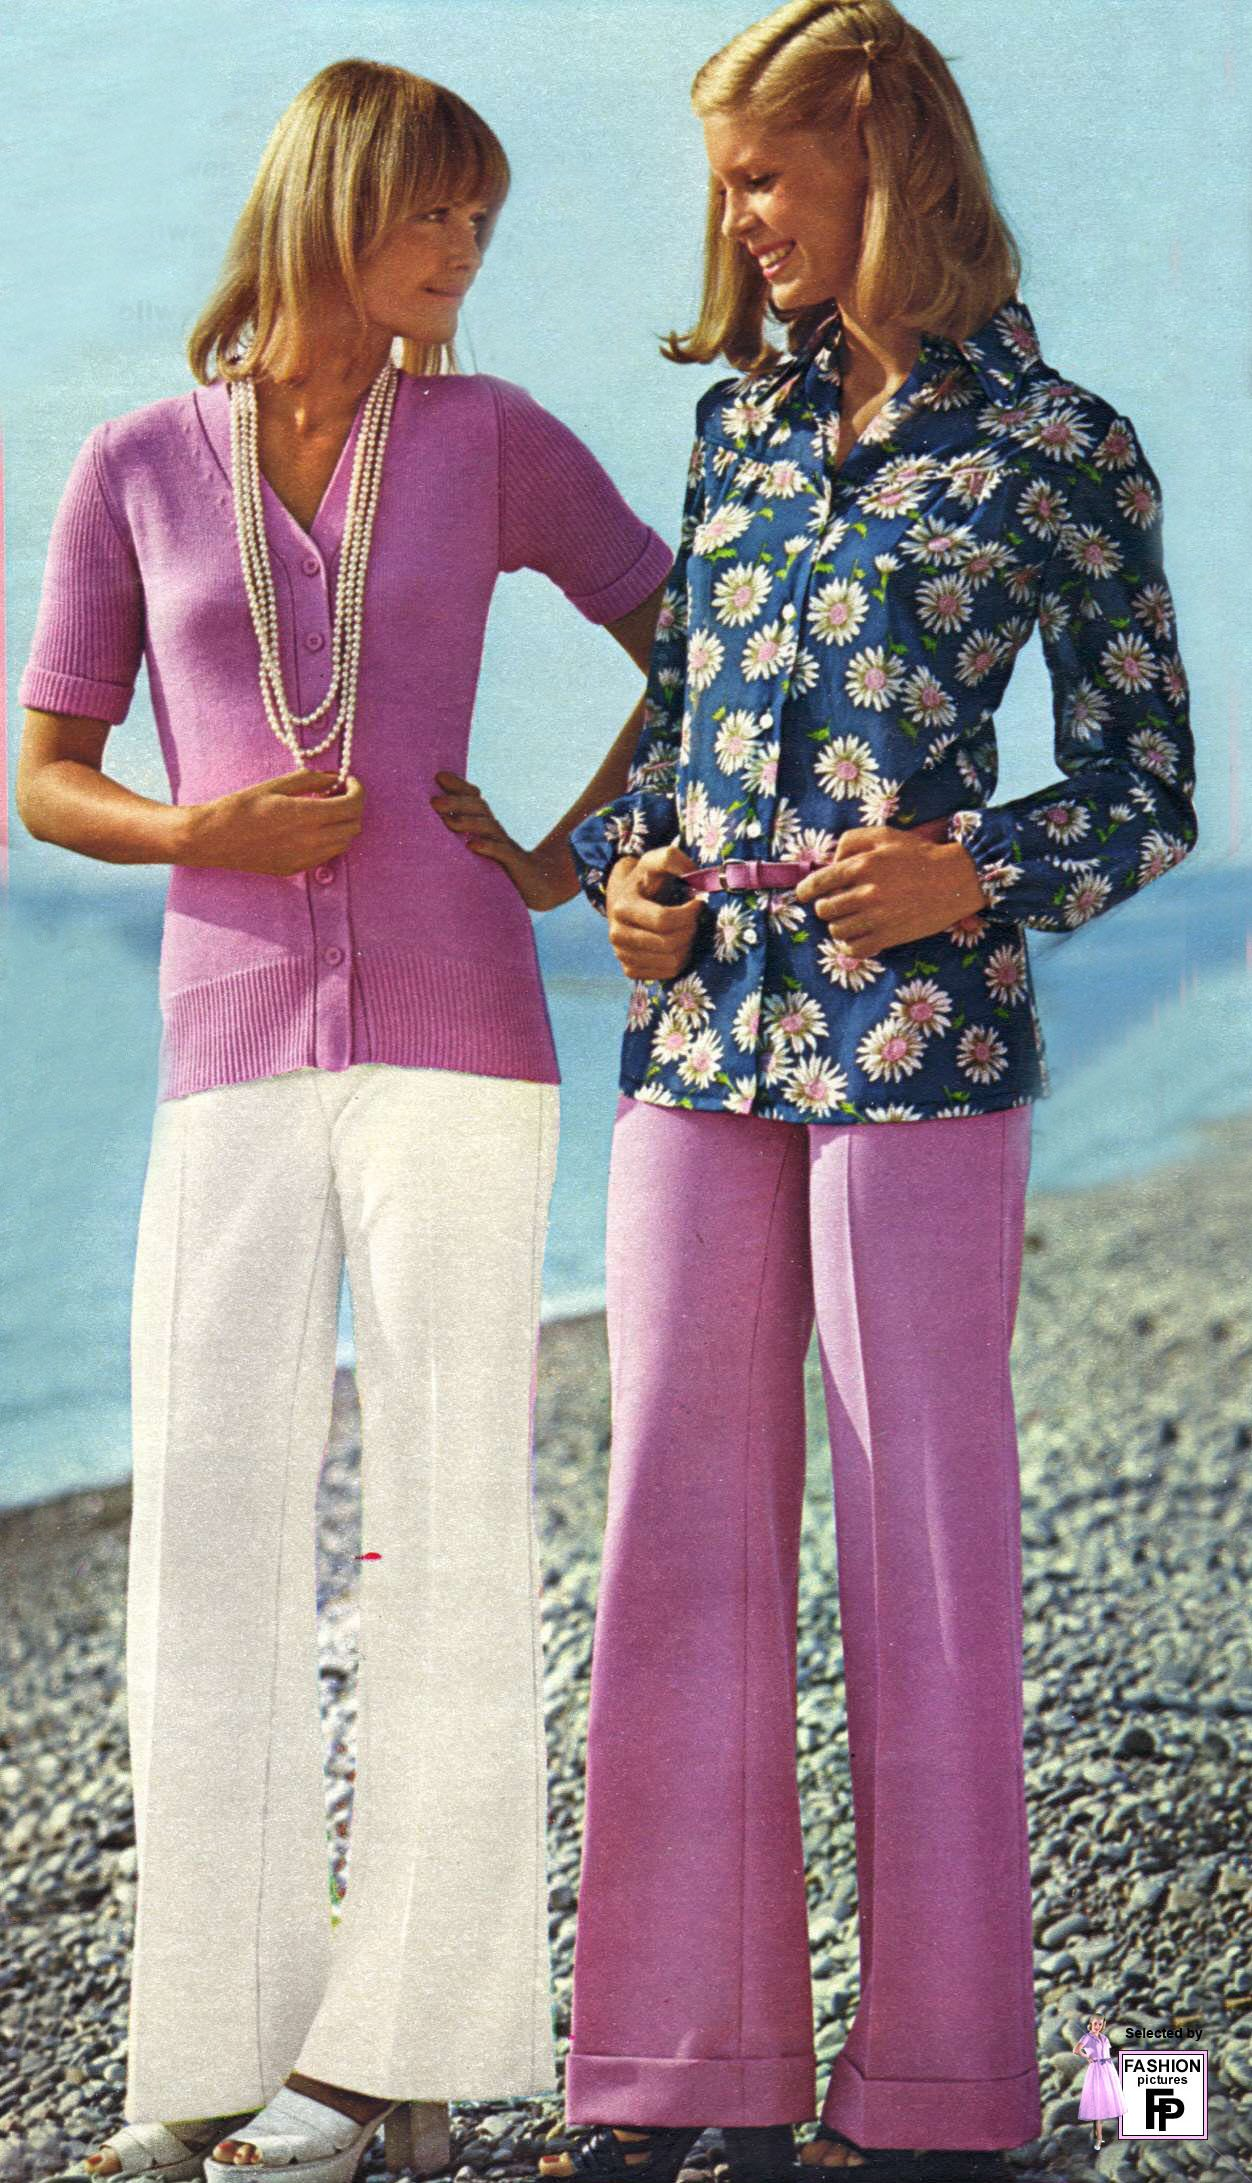 1970s vintage clothing | Vintage Fashion | Fashion, 70s ...